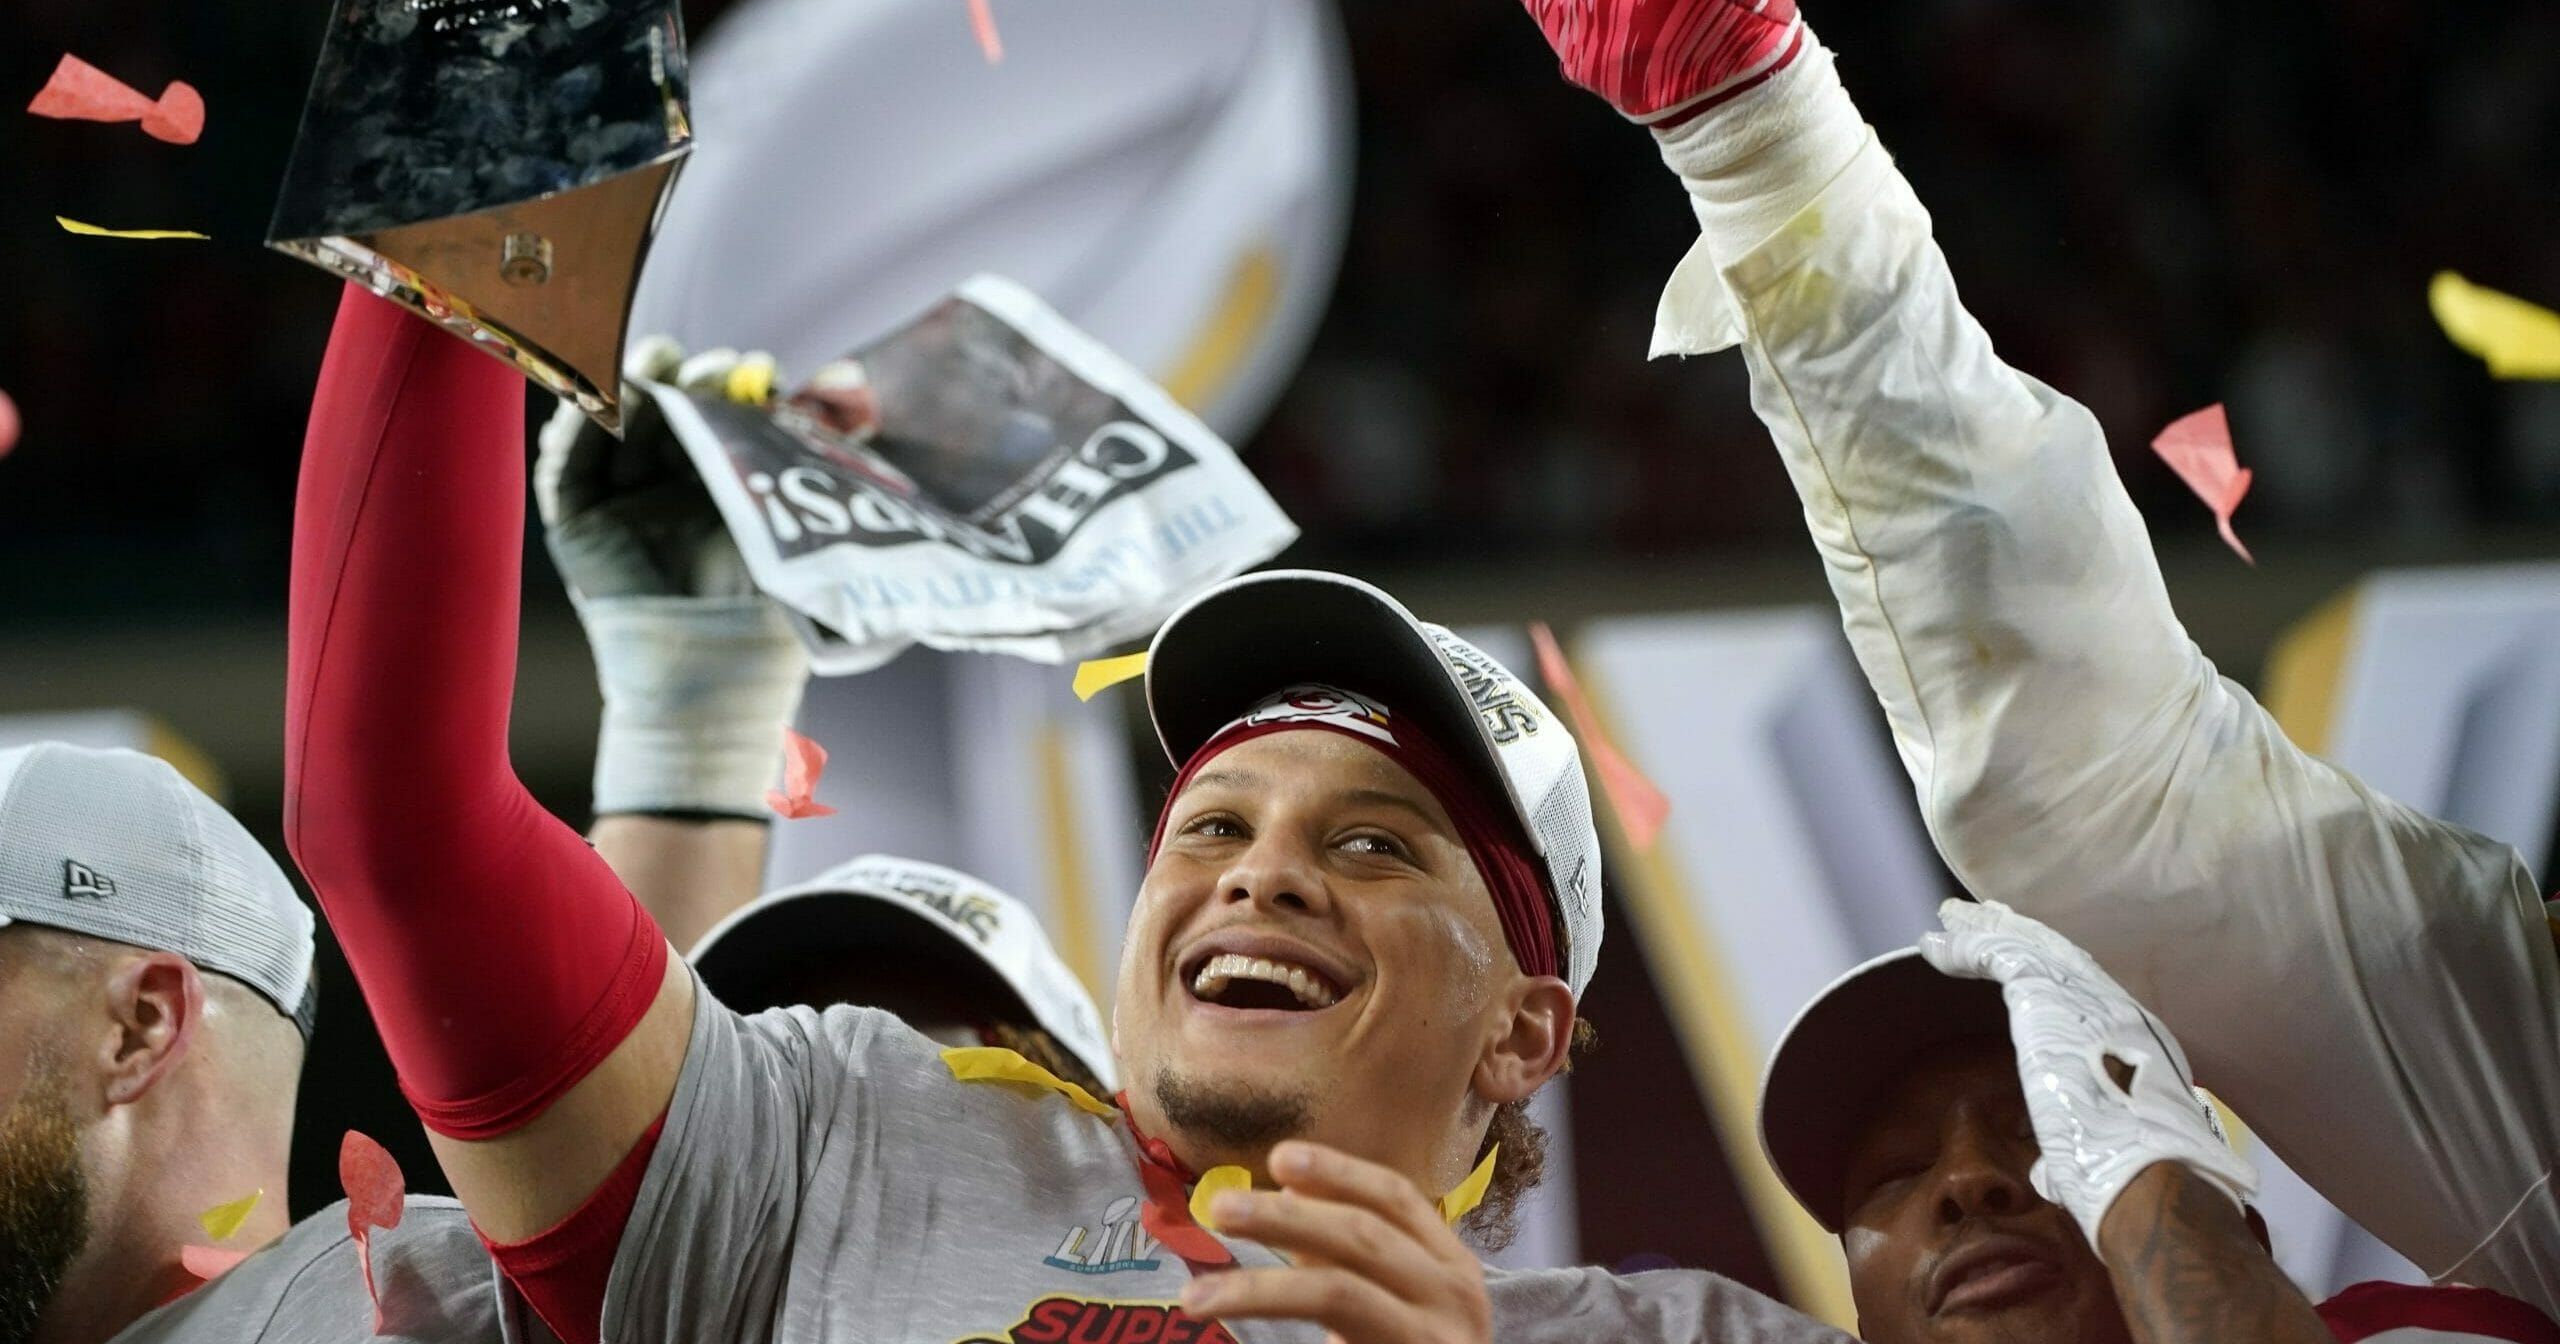 Kansas City Chiefs quarterback Patrick Mahomes hoists the Lombardi Trophy after his team defeated the San Francisco 49ers in Super Bowl LIV on Feb. 2, 2020, in Miami Gardens, Florida.